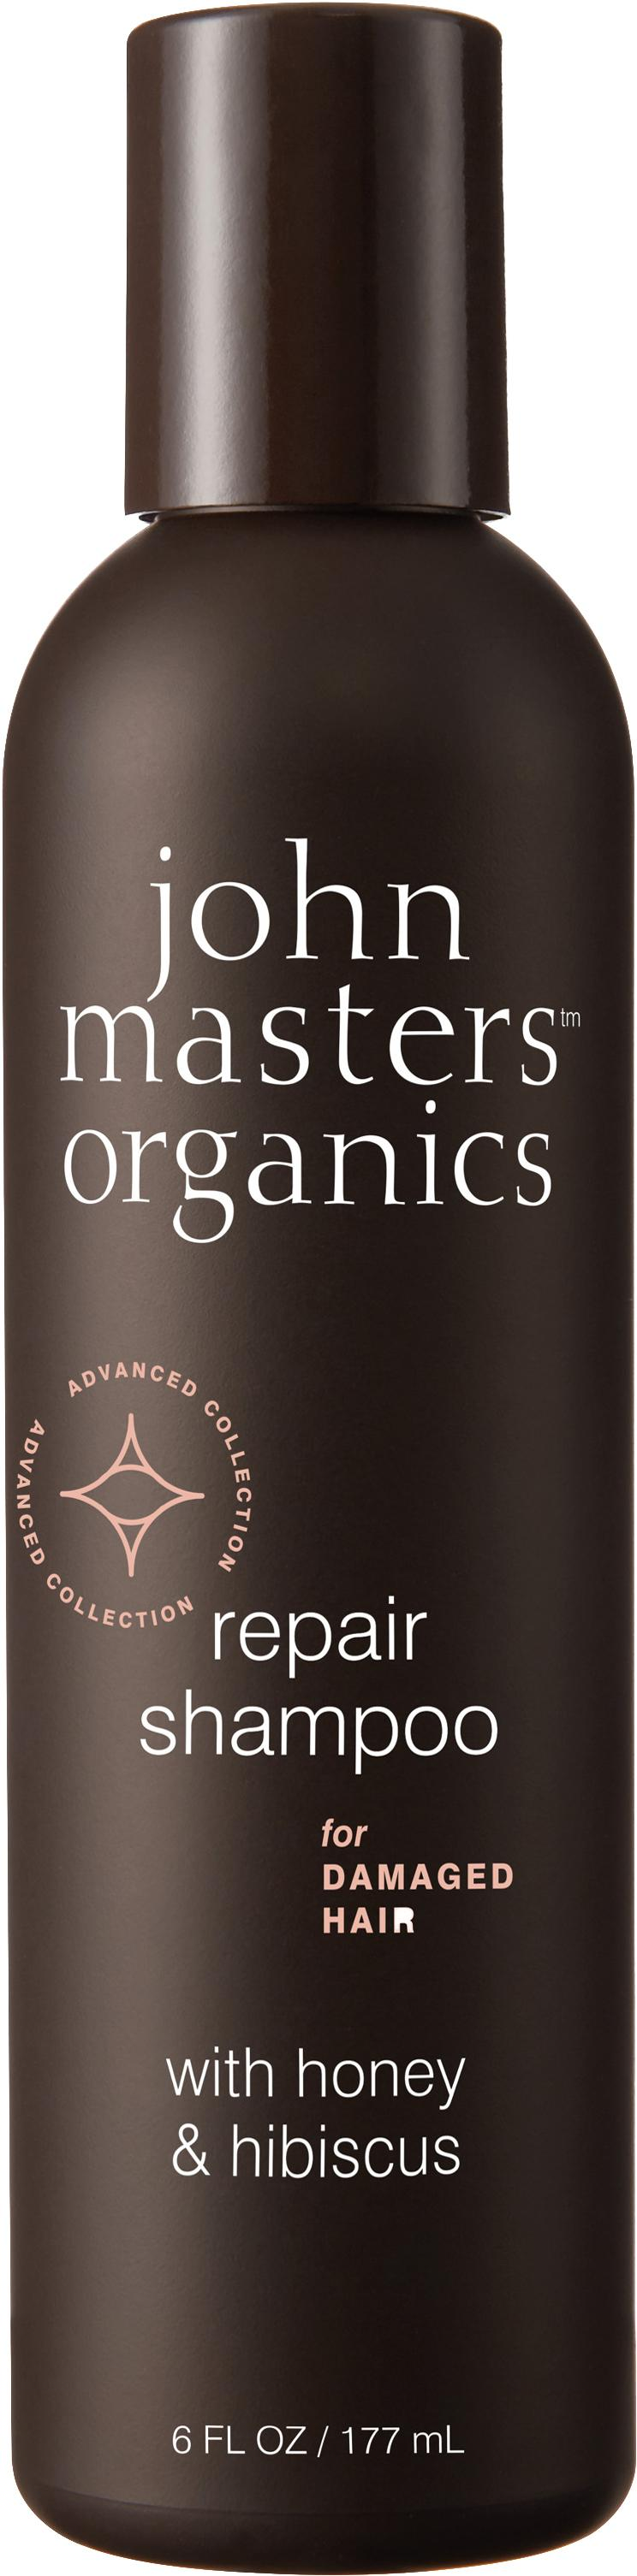 John Masters Organics Repair Shampoo For Damaged Hair With Honey Hibiscus